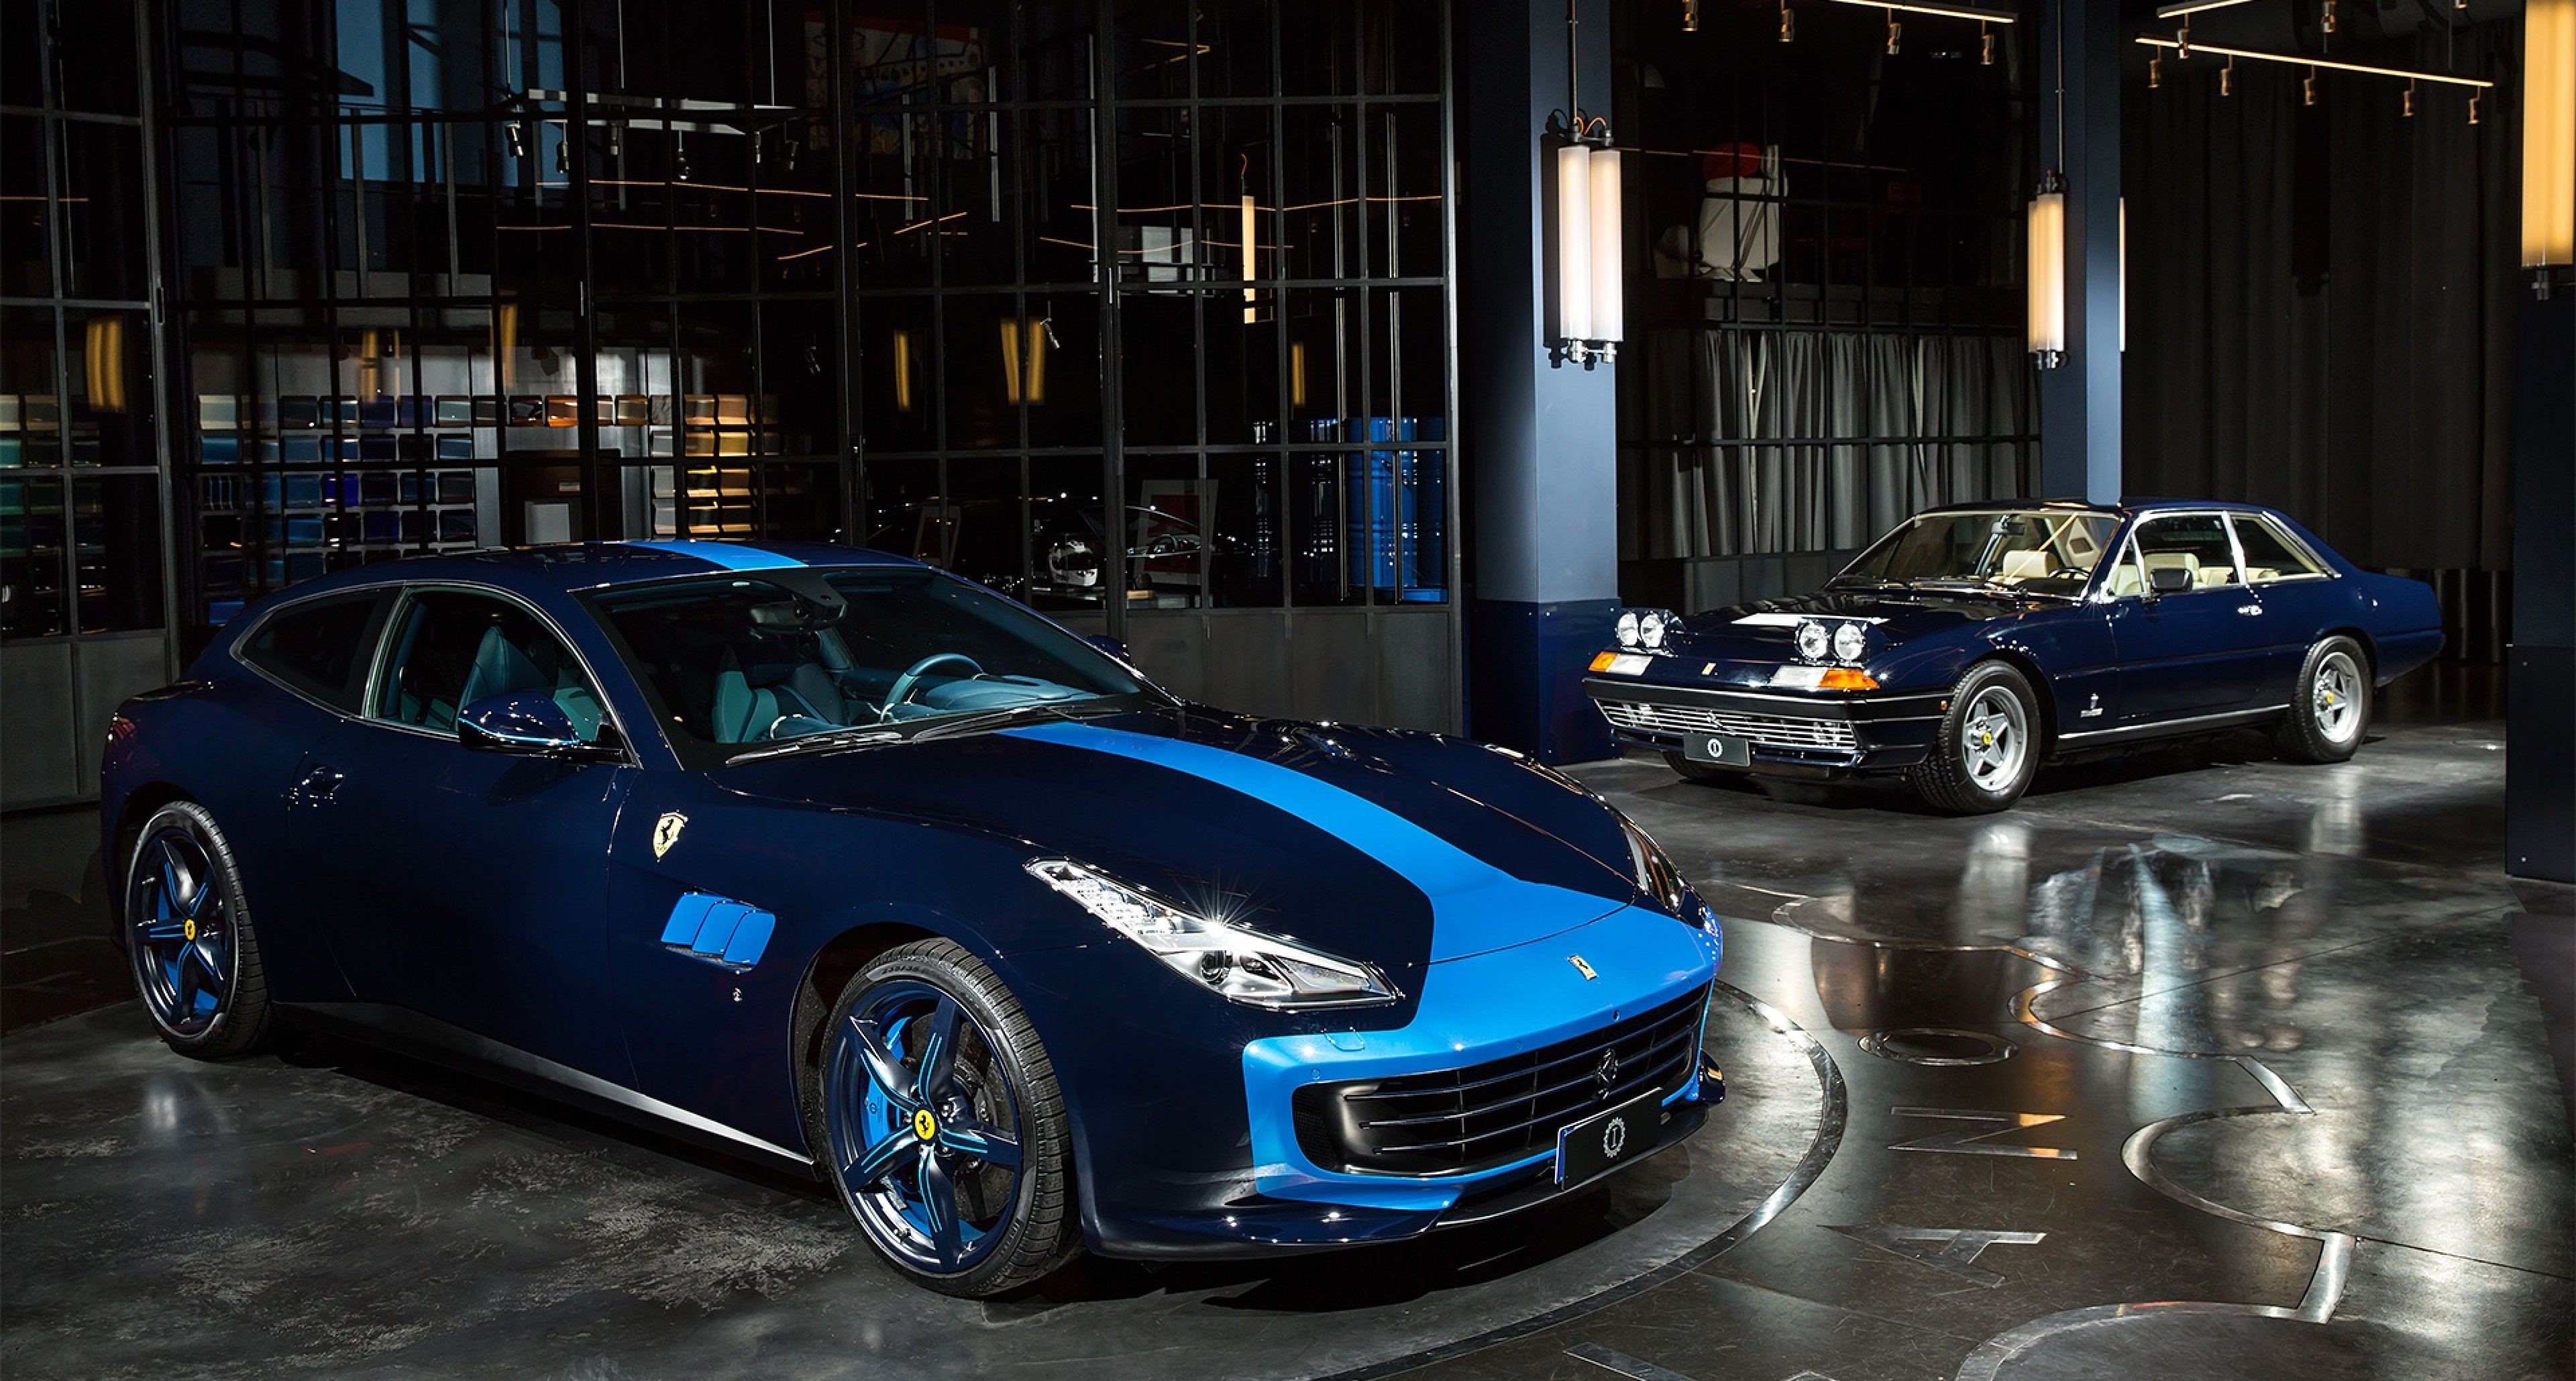 garage italia customs ferrari gtc4 lusso ist ein blaues wunder classic driver magazine. Black Bedroom Furniture Sets. Home Design Ideas